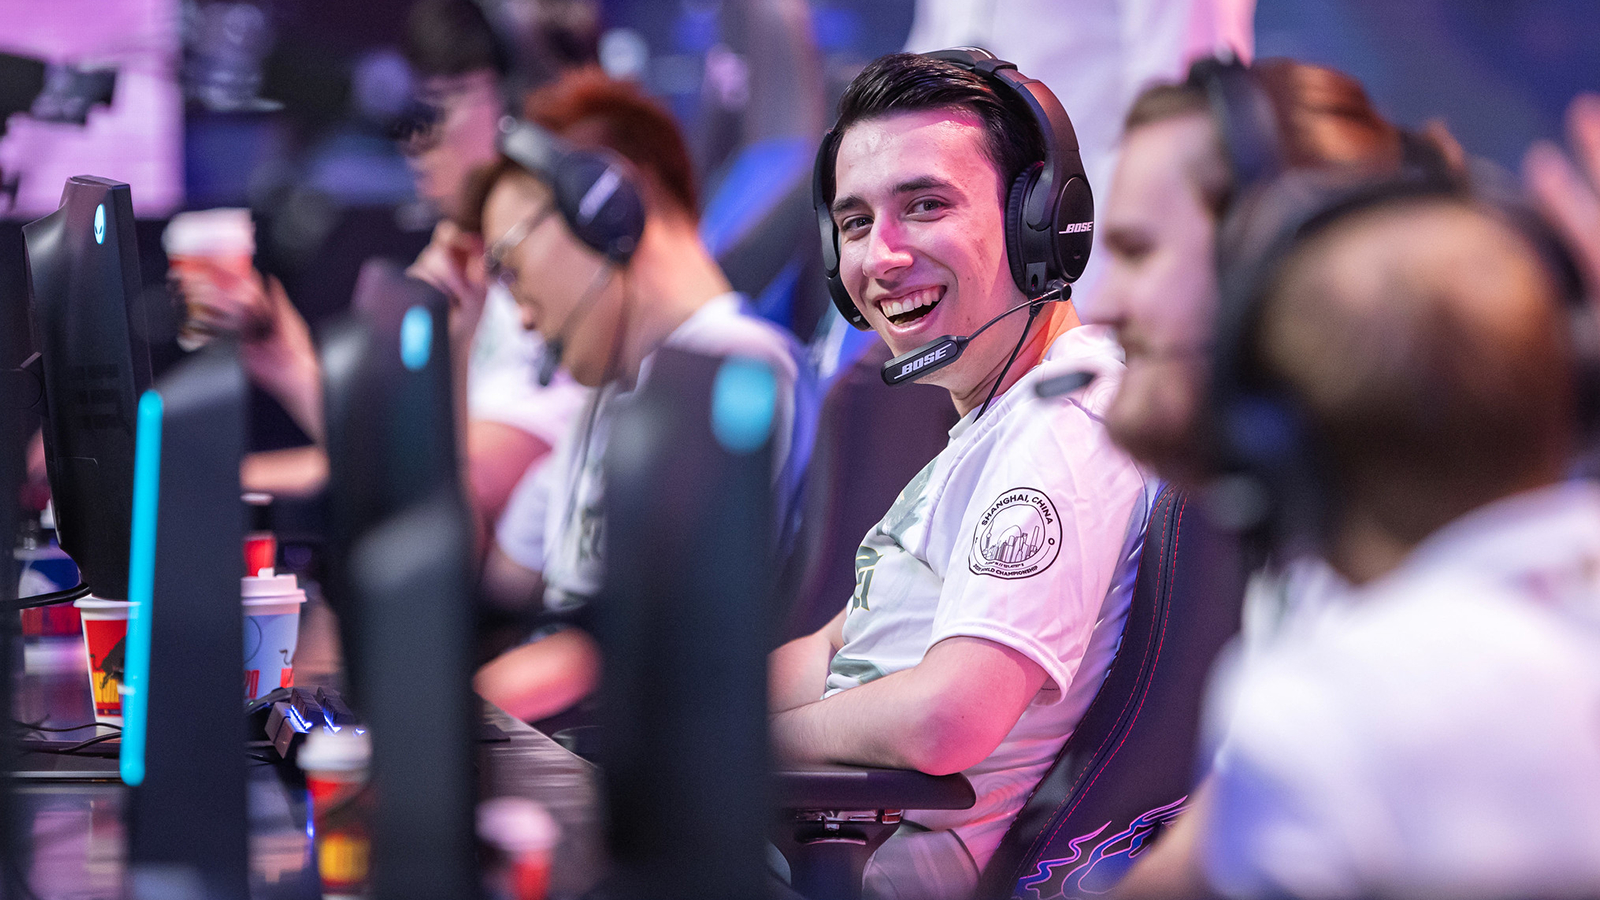 PowerOfEvil smiles playing for FlyQuest at Worlds 2020.